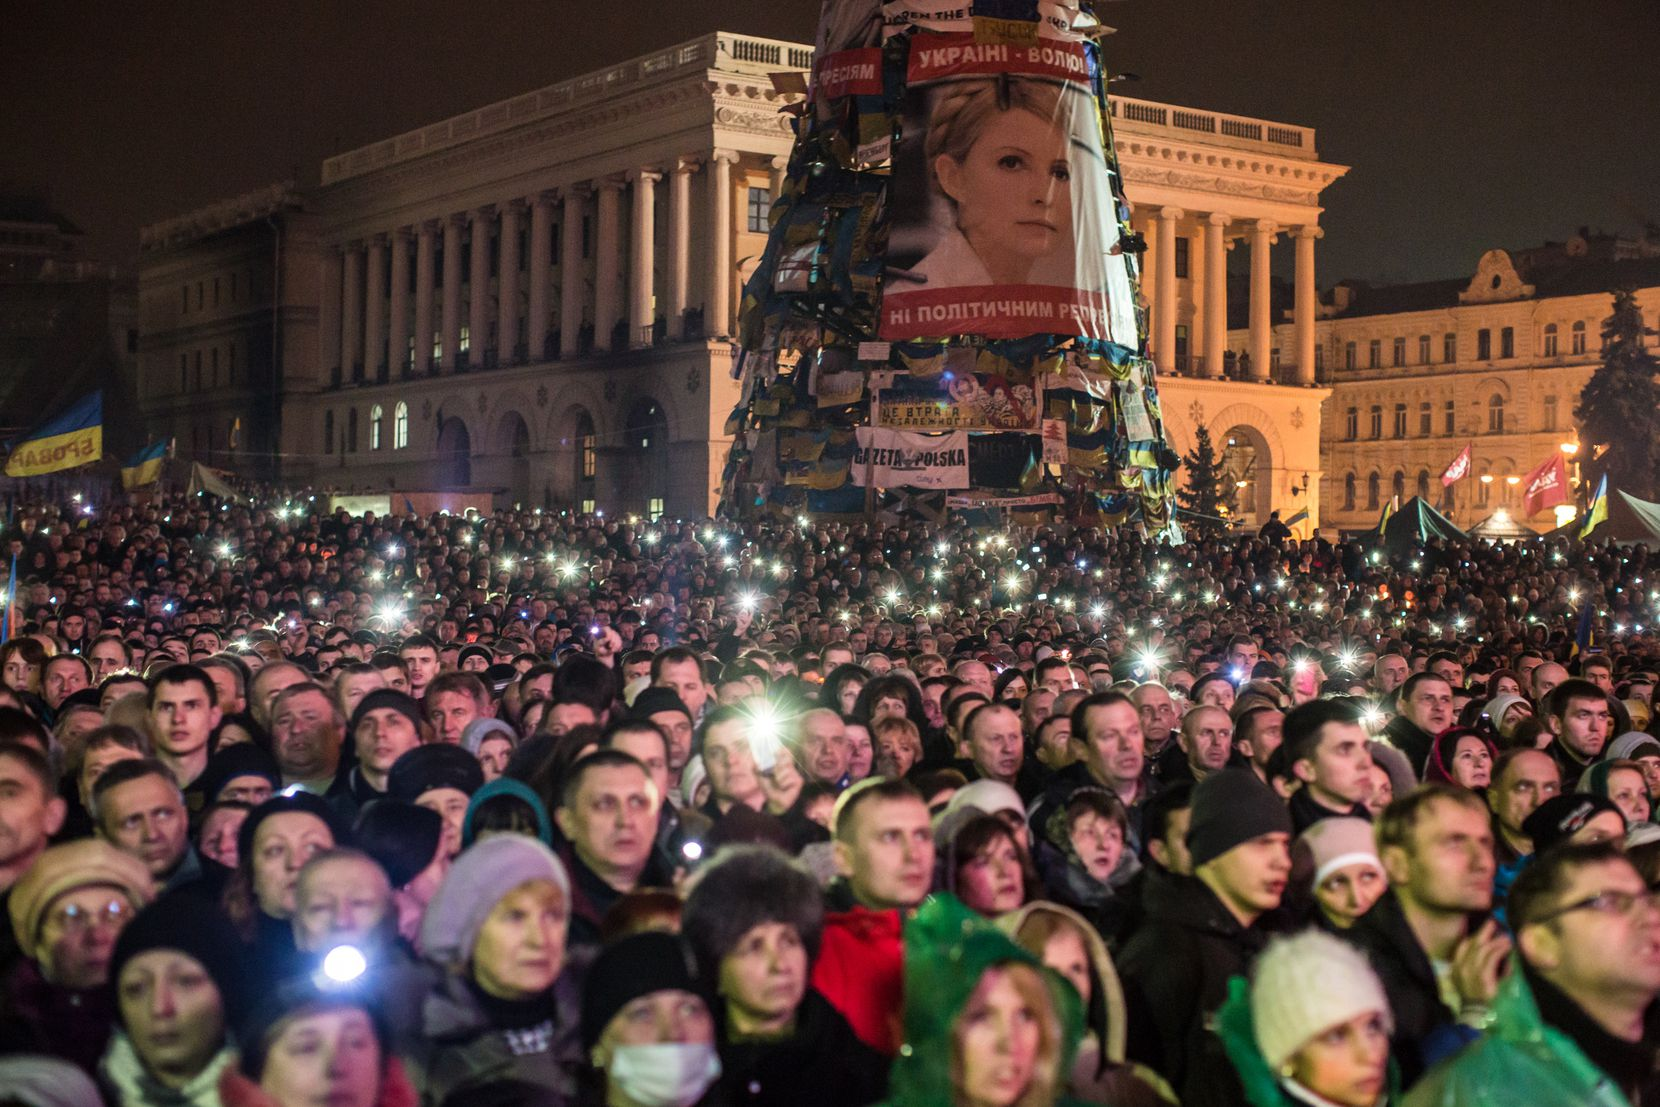 A large photograph of former Prime Minister Yulia Tymoshenko hangs on the side of a structure on Independence Square before her address to anti-government protesters gathered in Kiev. The leader of the 2004 Orange Revolution against current embattled President Viktor Yanukovych traveled to Kiev to address the crowd immediately after being released from prison on what many claim were politically motivated charges.